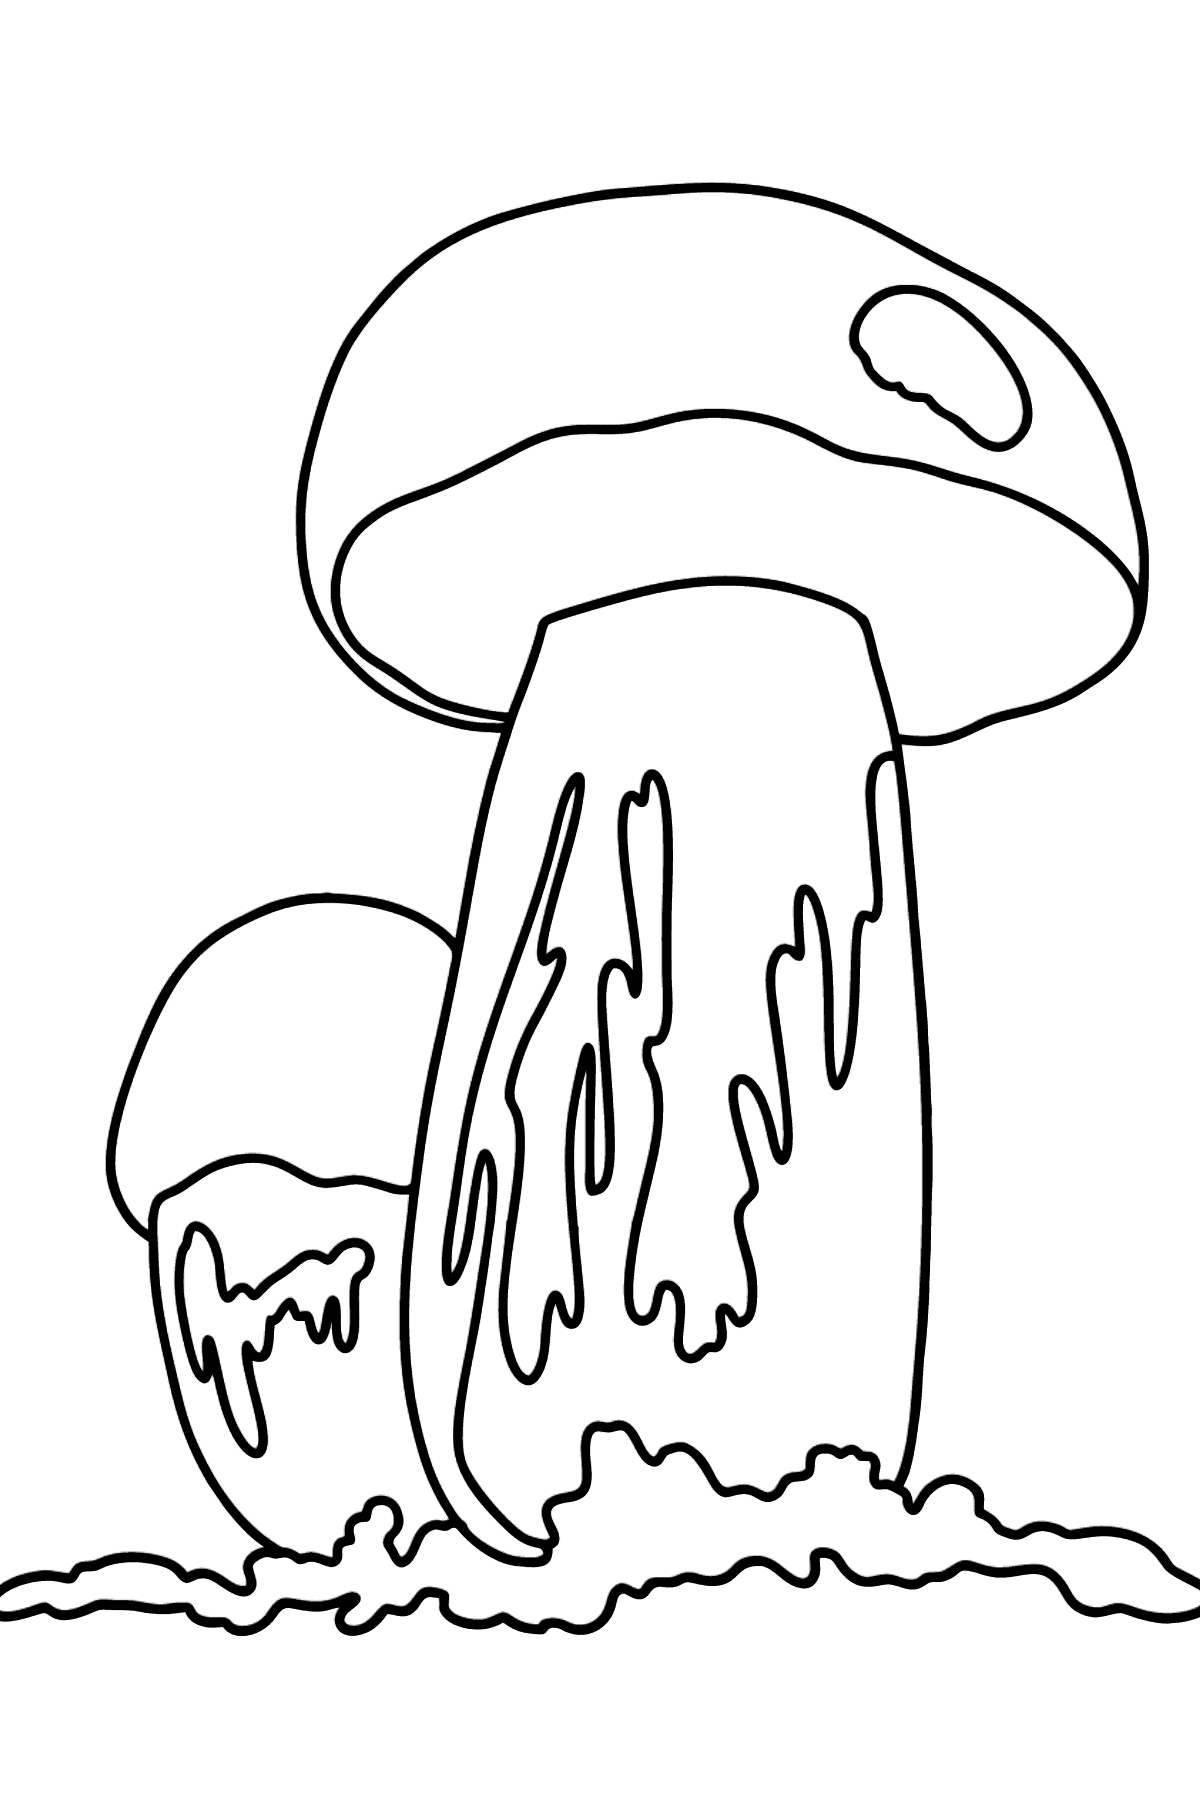 Cep coloring page - Coloring Pages for Kids